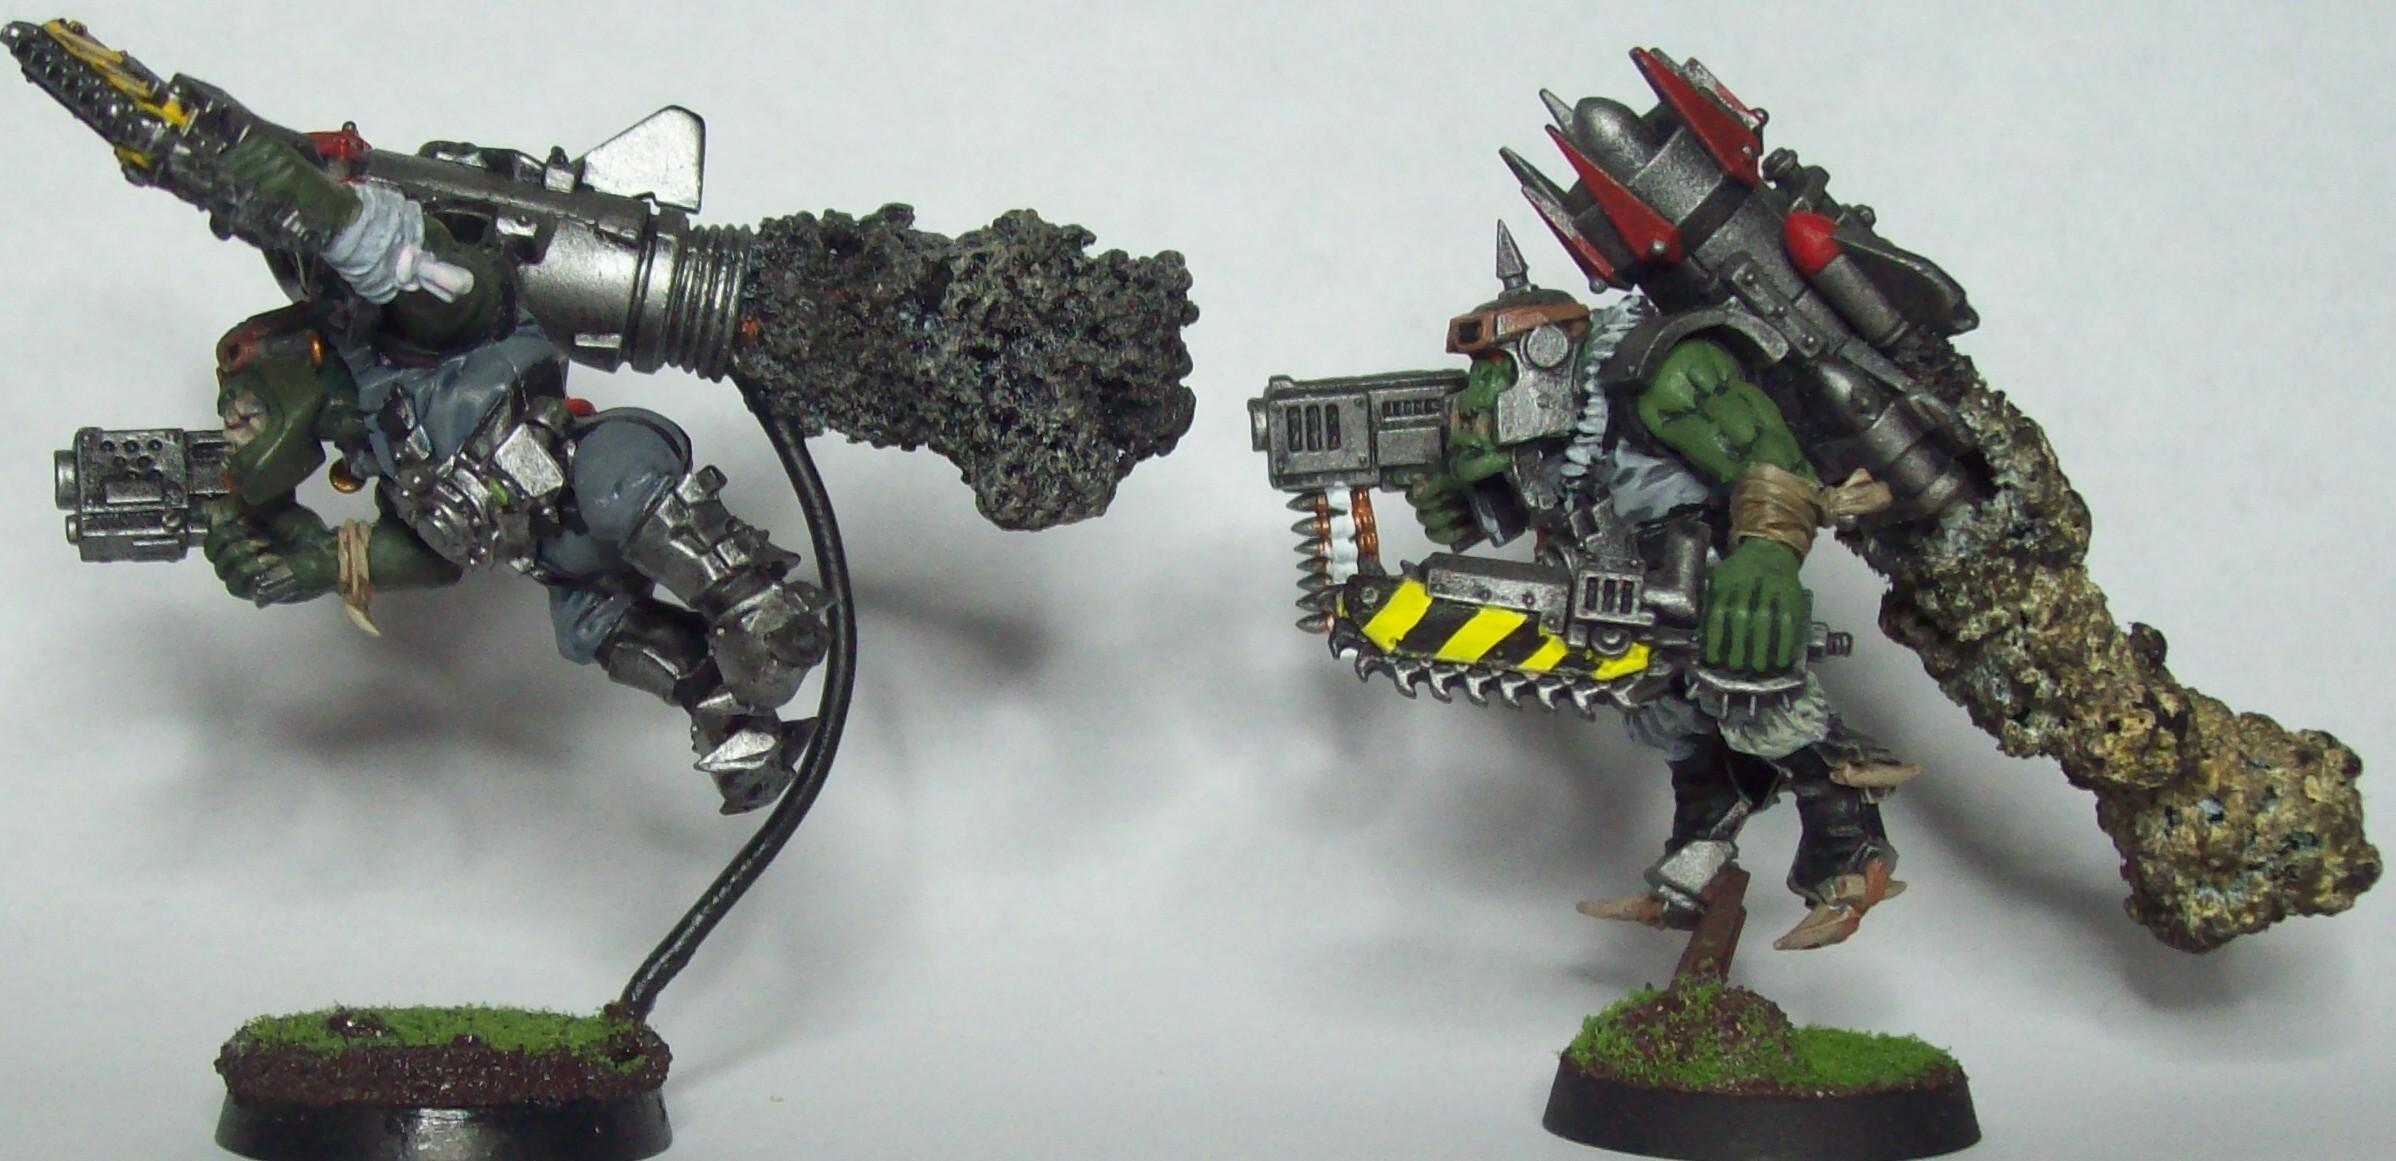 28mm, Flying, Orks, Orky, Painted, Smoke, Stormboyz, Warhammer 40,000